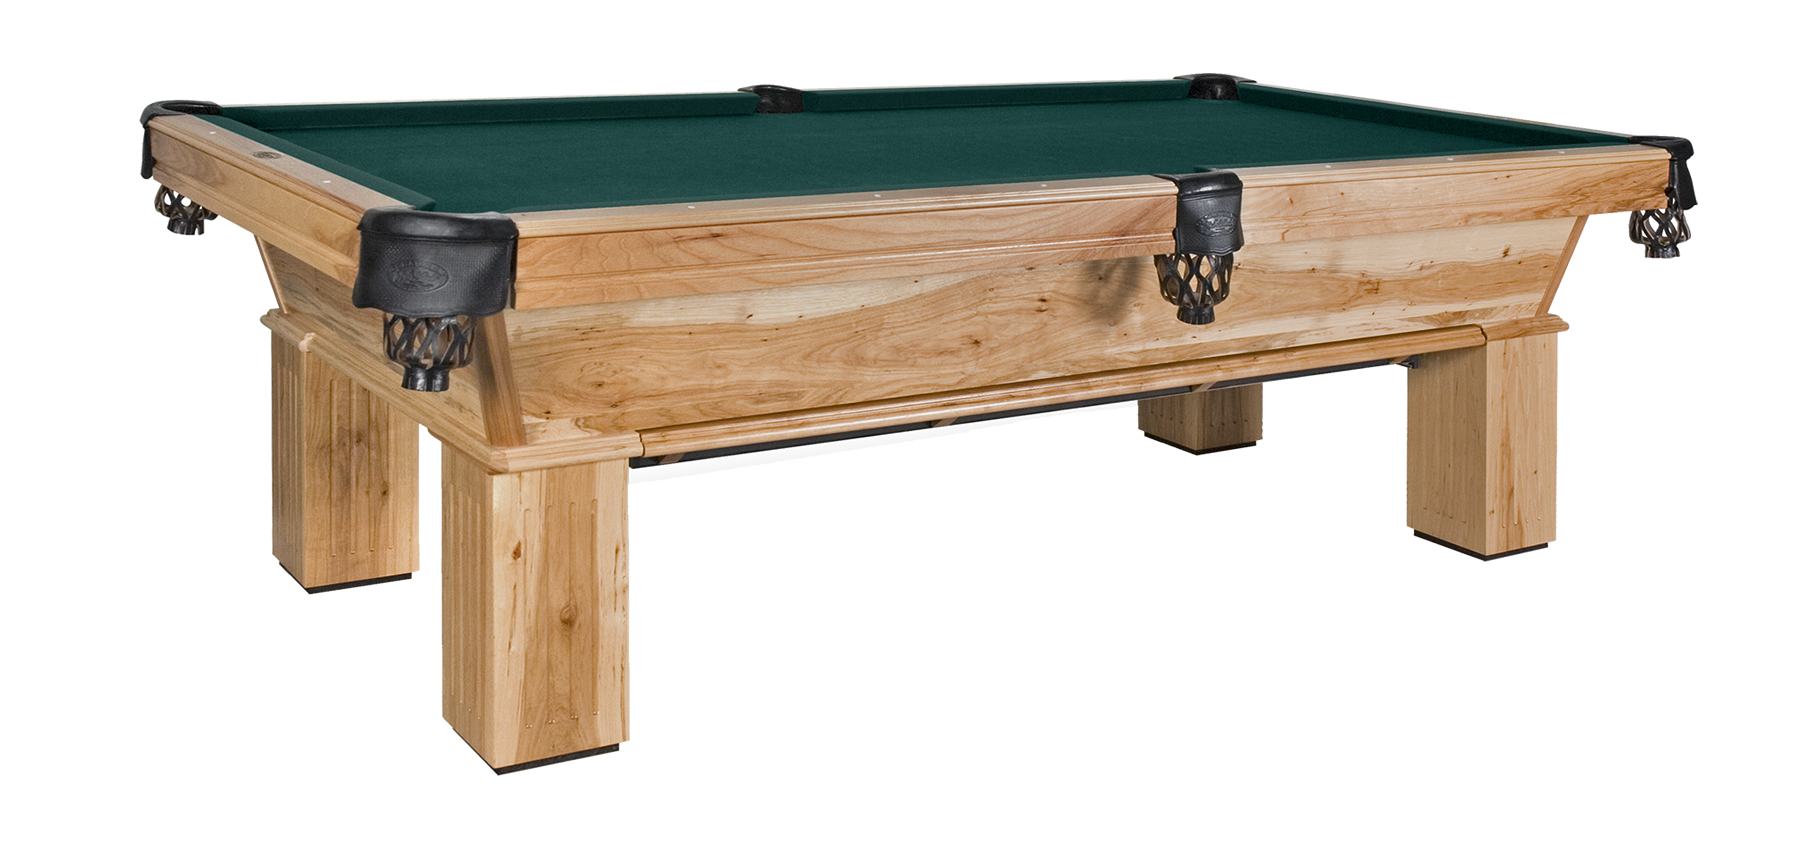 Olhausen Billiards Billiards And Barstools Gallery Pool Tables - Pool table movers philadelphia